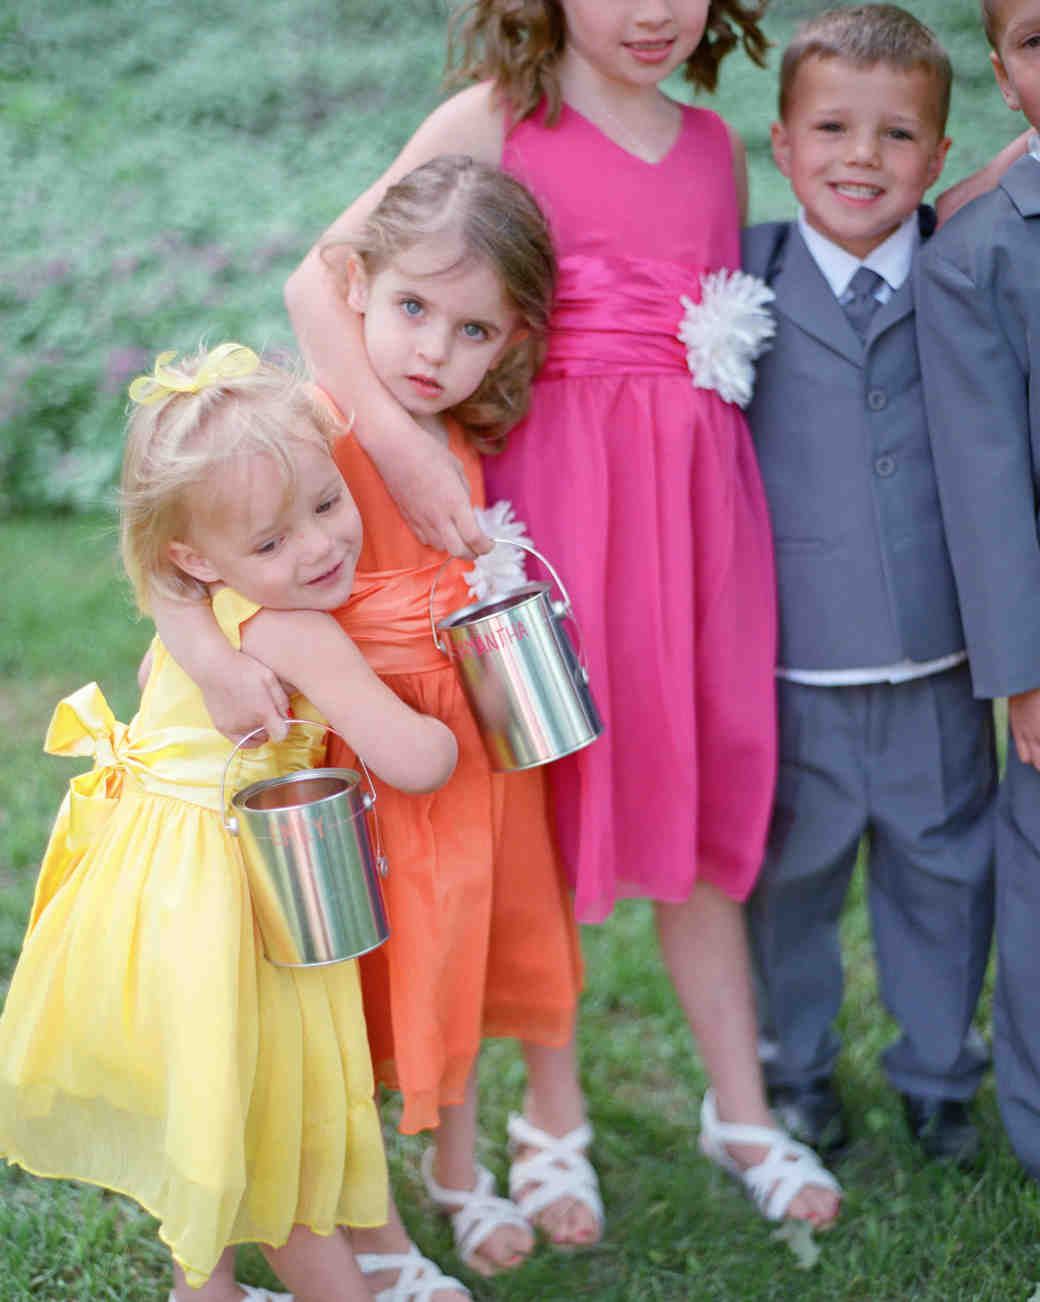 liz-jeff-wedding-kids-130-s112303-1115.jpg